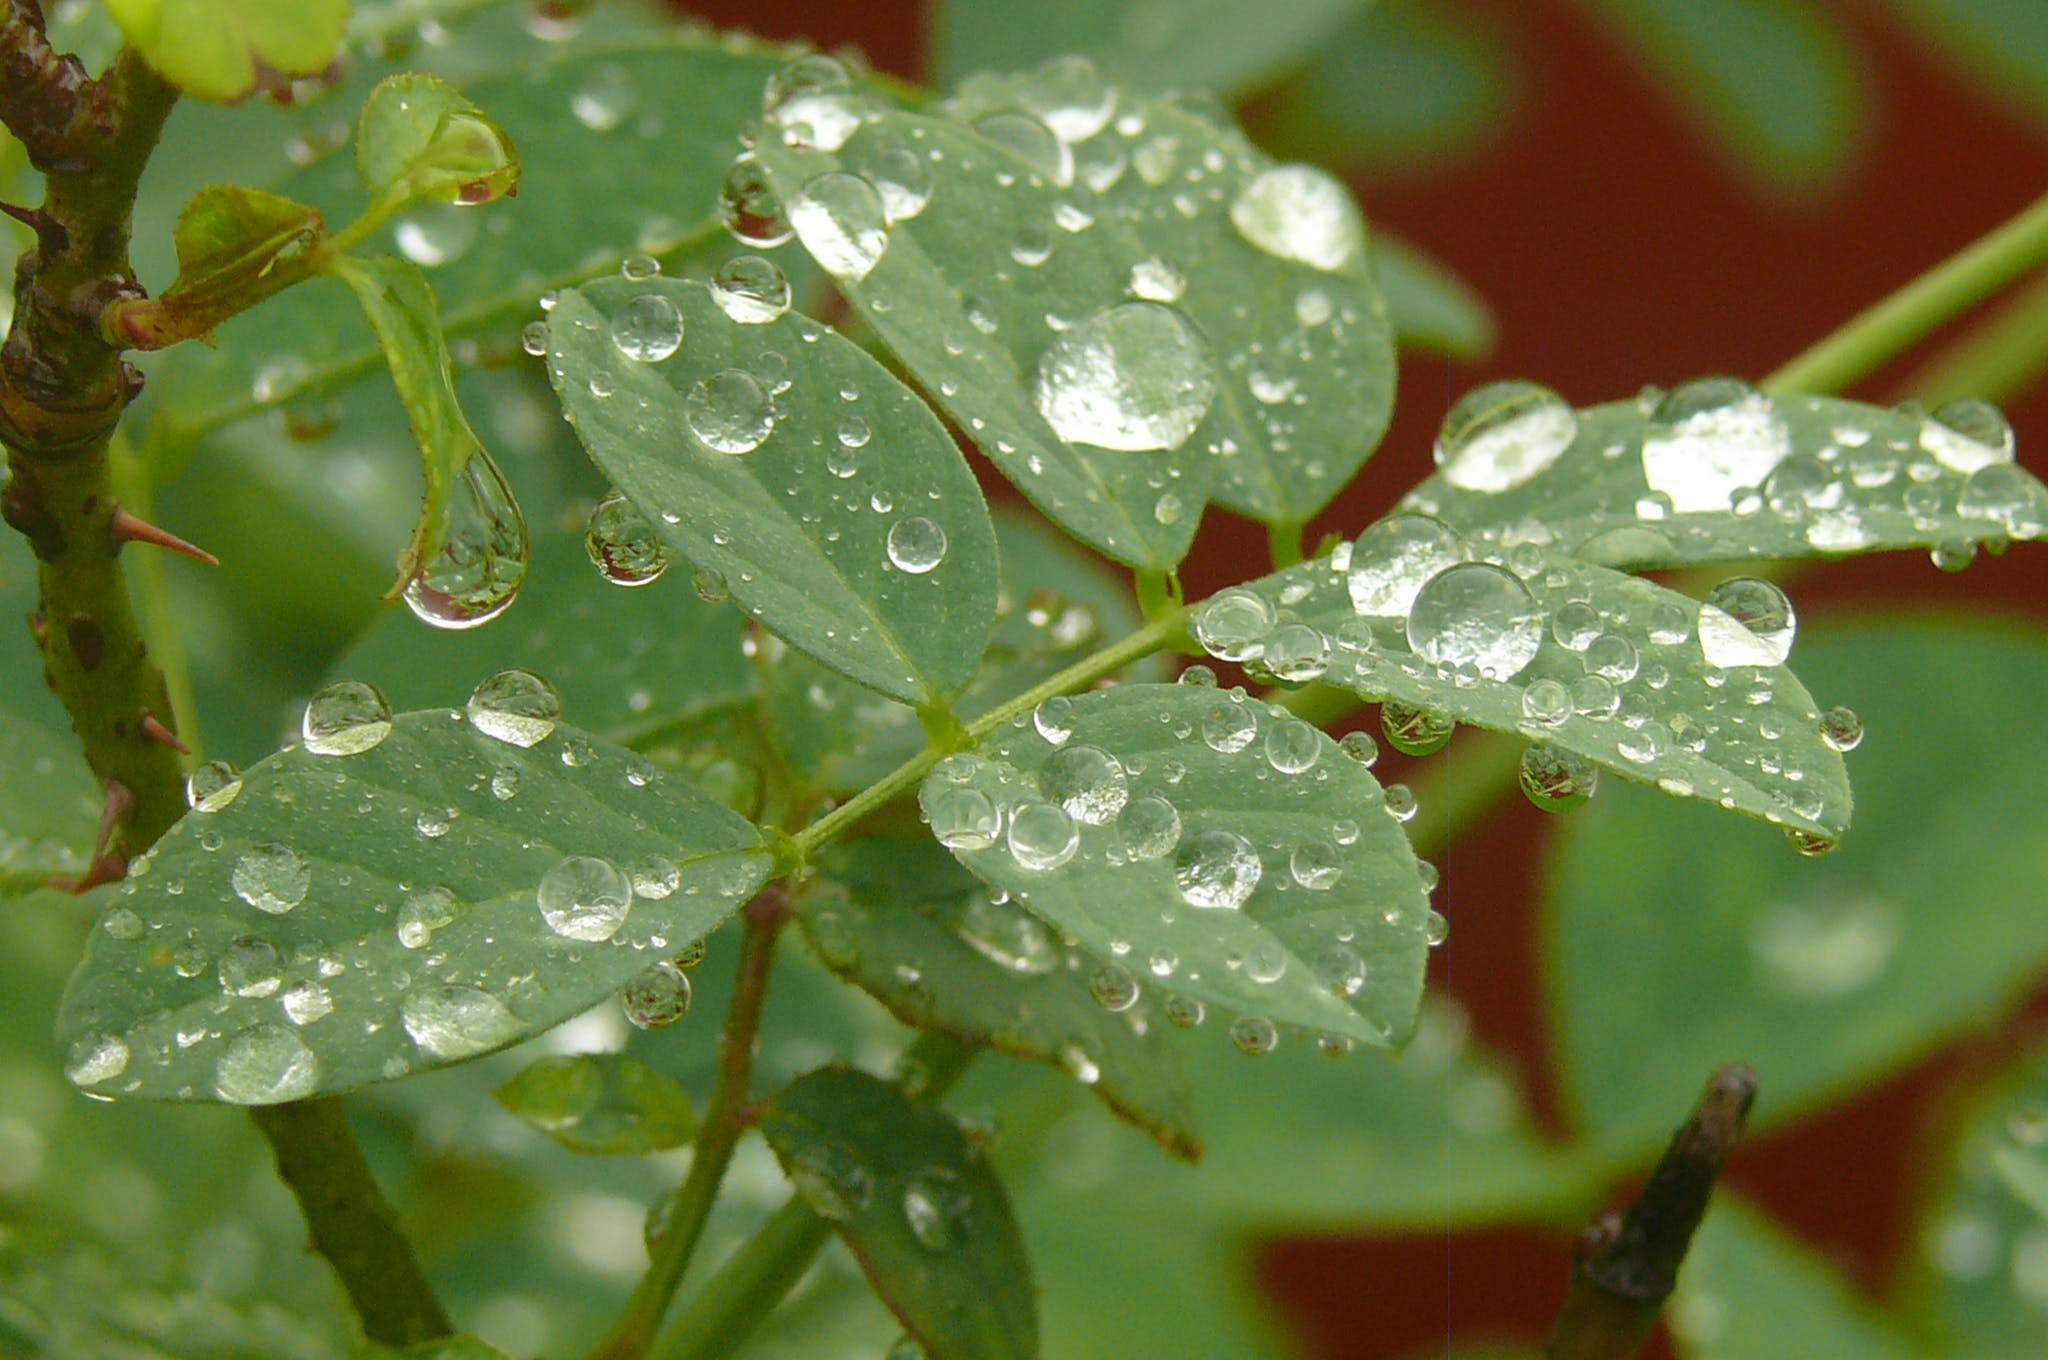 Free stock photo of Water Droplets On plant